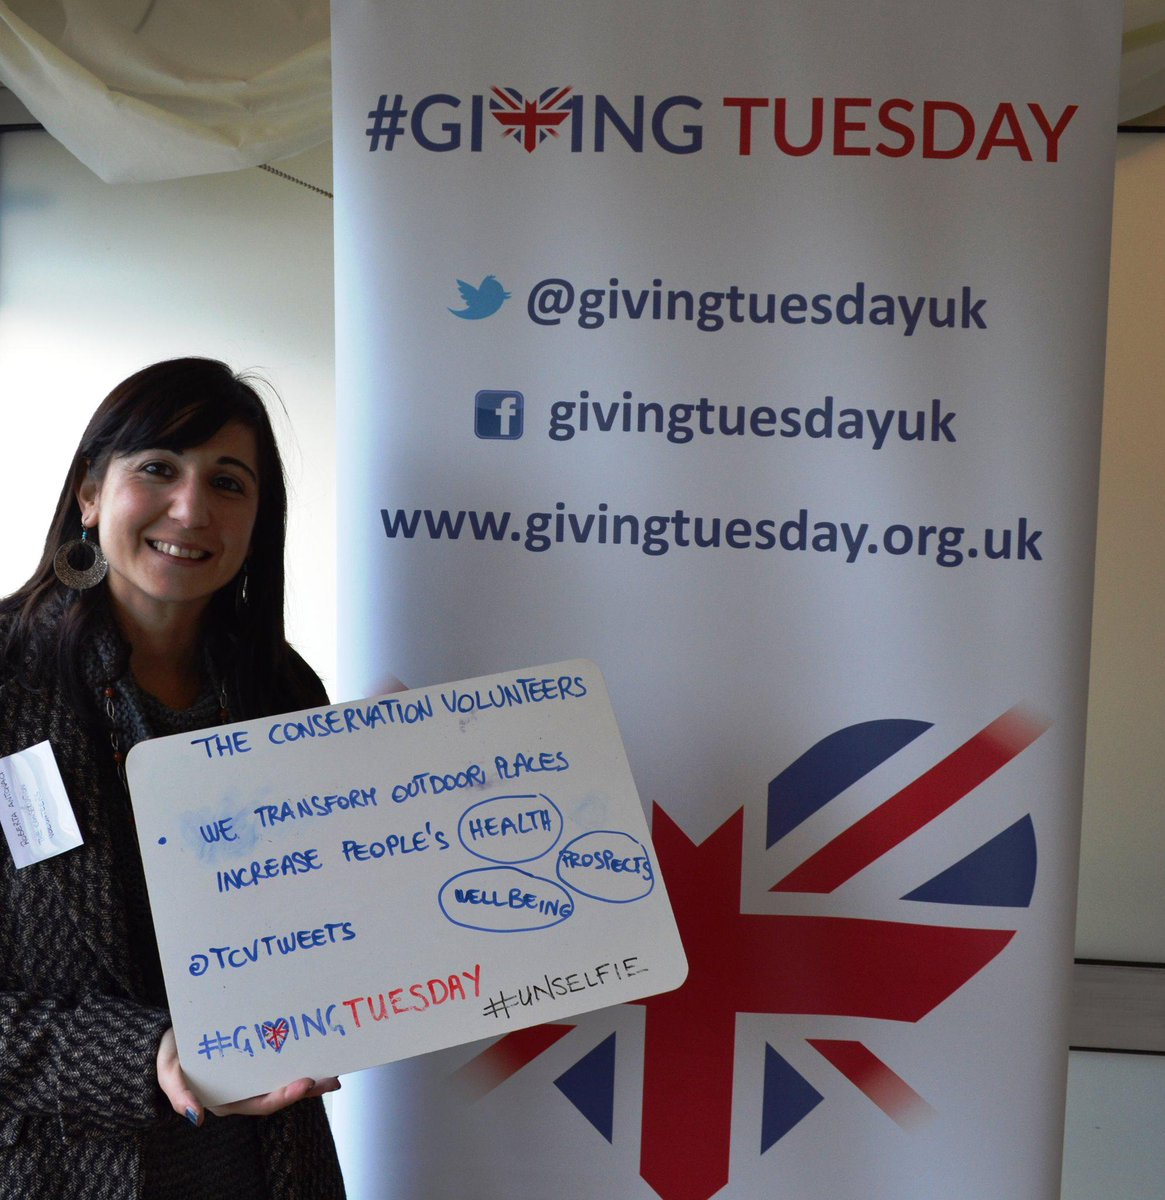 #GivingTuesday #unselfie Donate £10 by texting XMAS to 70444 or join us for an event near you http://t.co/Cg2d7Ur0ui http://t.co/YOHyekJYWi